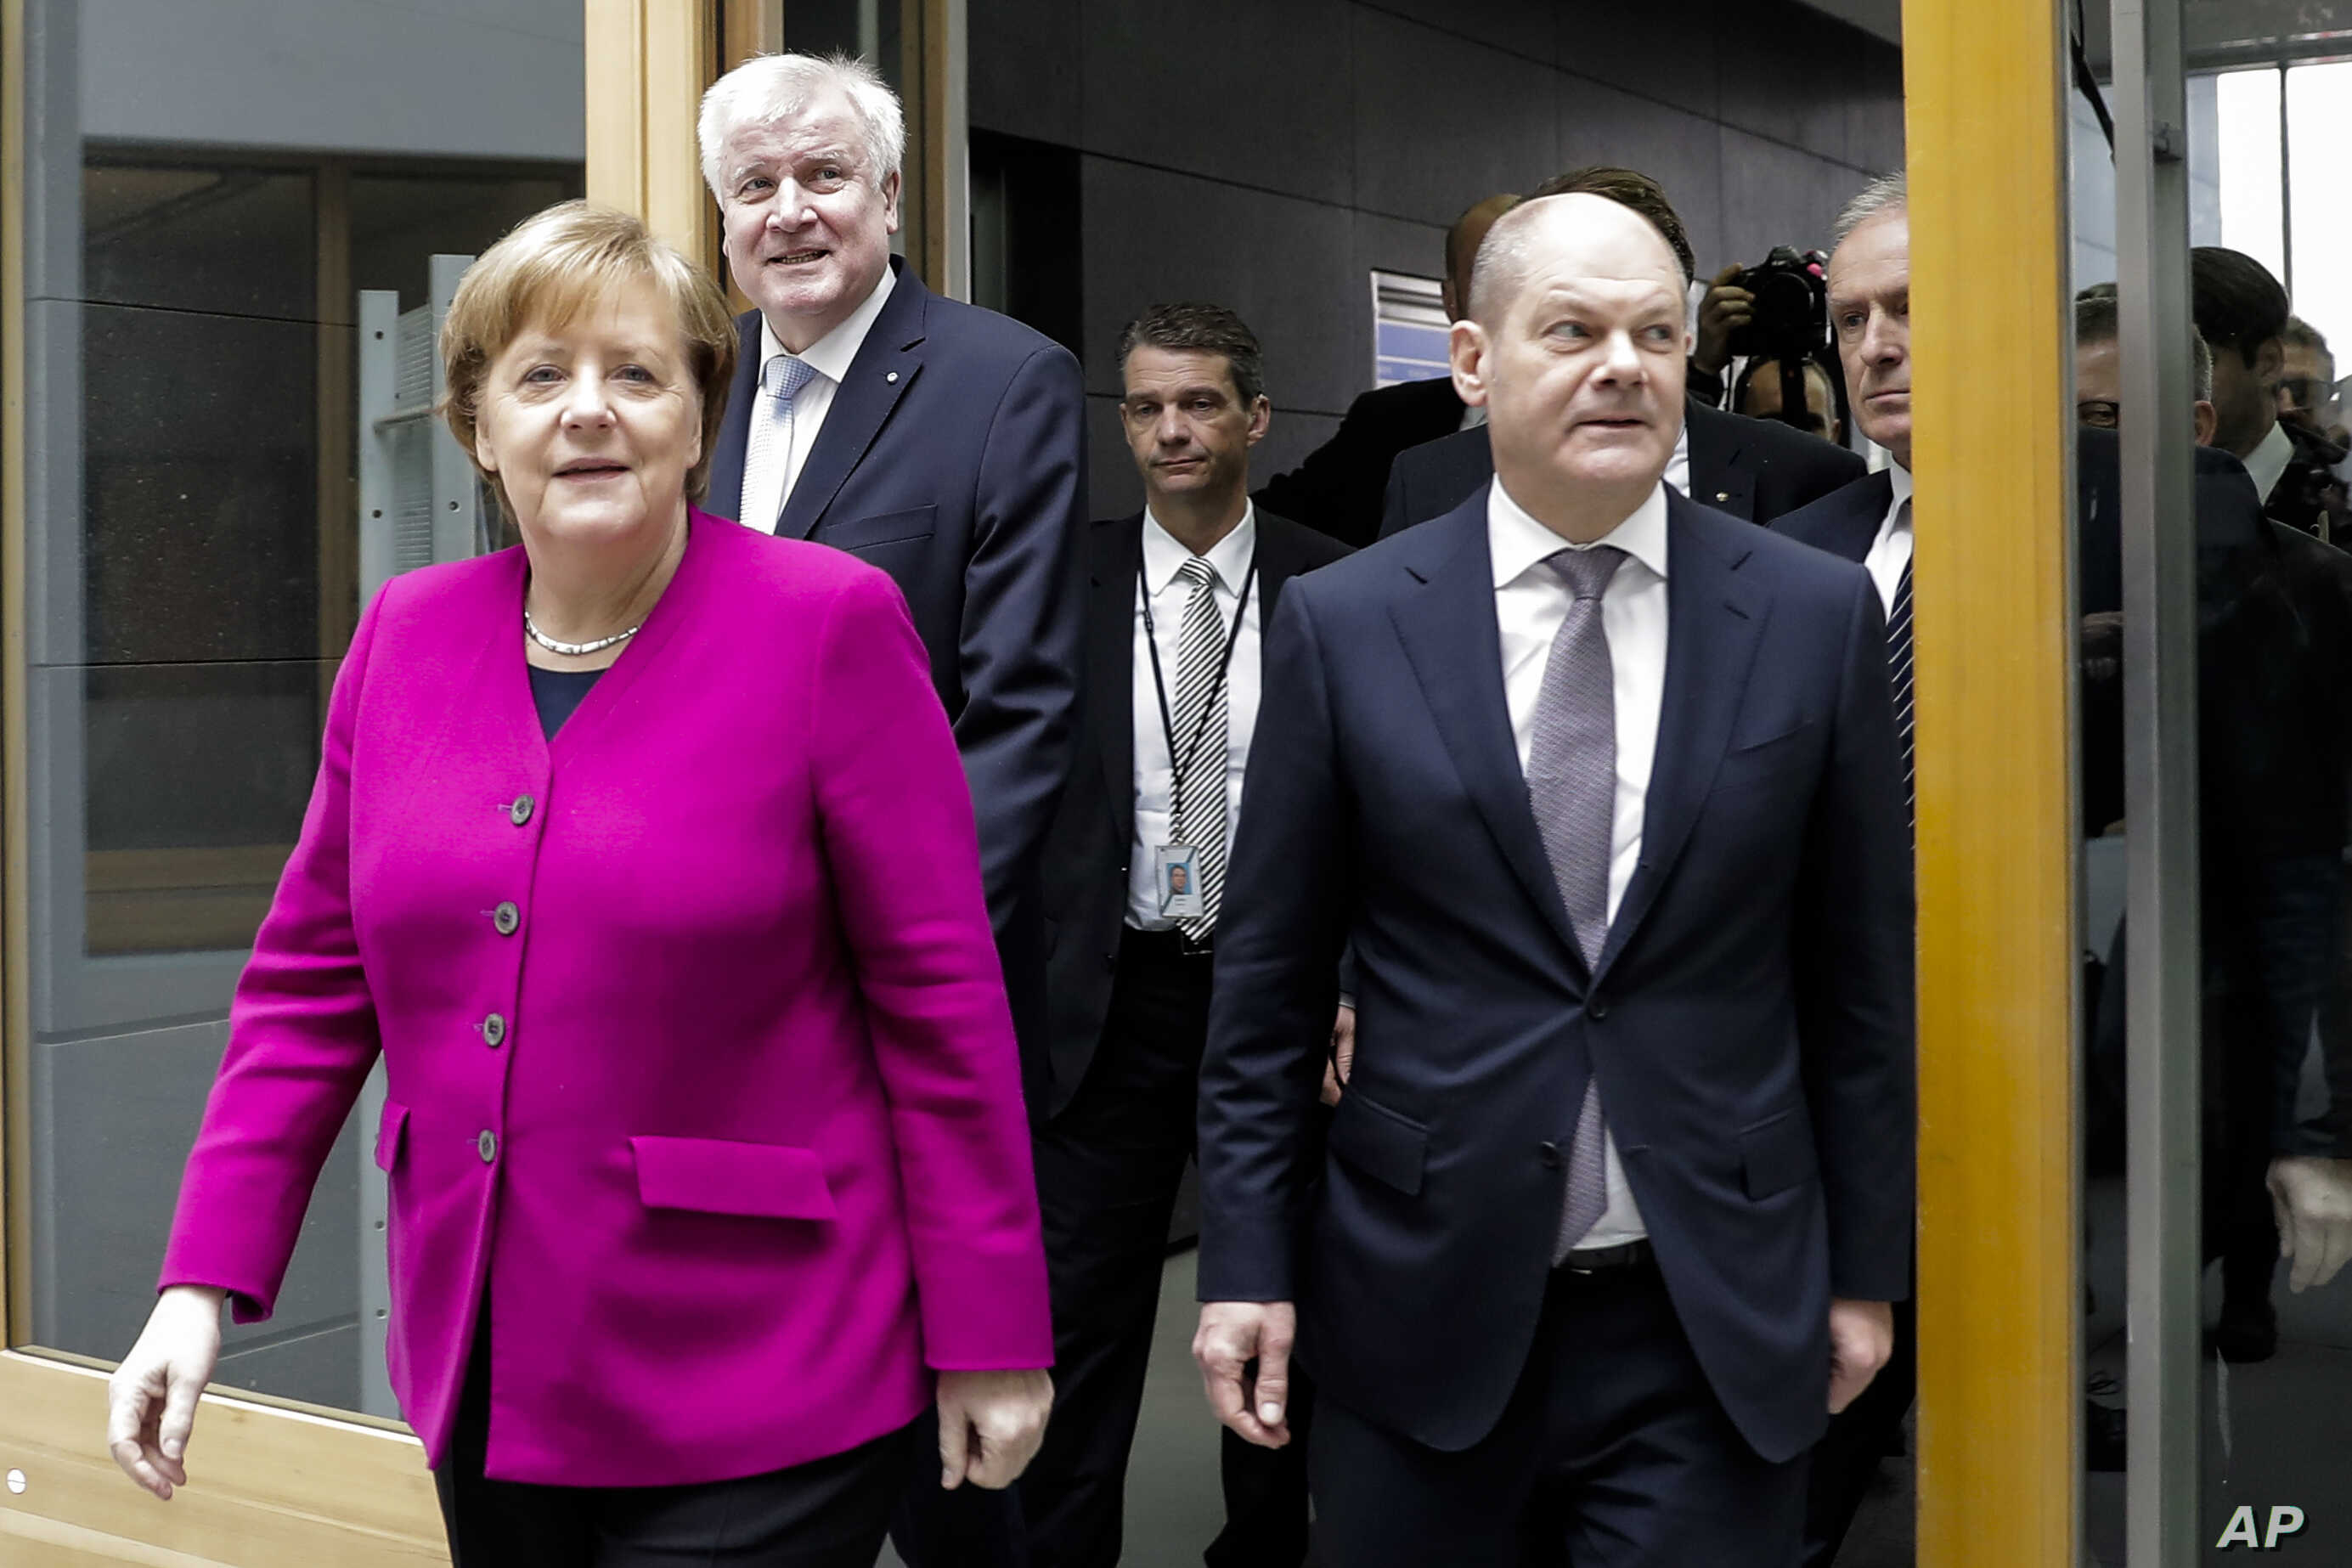 German Chancellor and Christian Democratic Union, CDU, party chairwoman Angela Merkel, left, Christian Social Union, CSU, party chairman Horst Seehofer, second from left, and Social Democratic Party, SPD temporary party leader Olaf Scholz, right, arr...